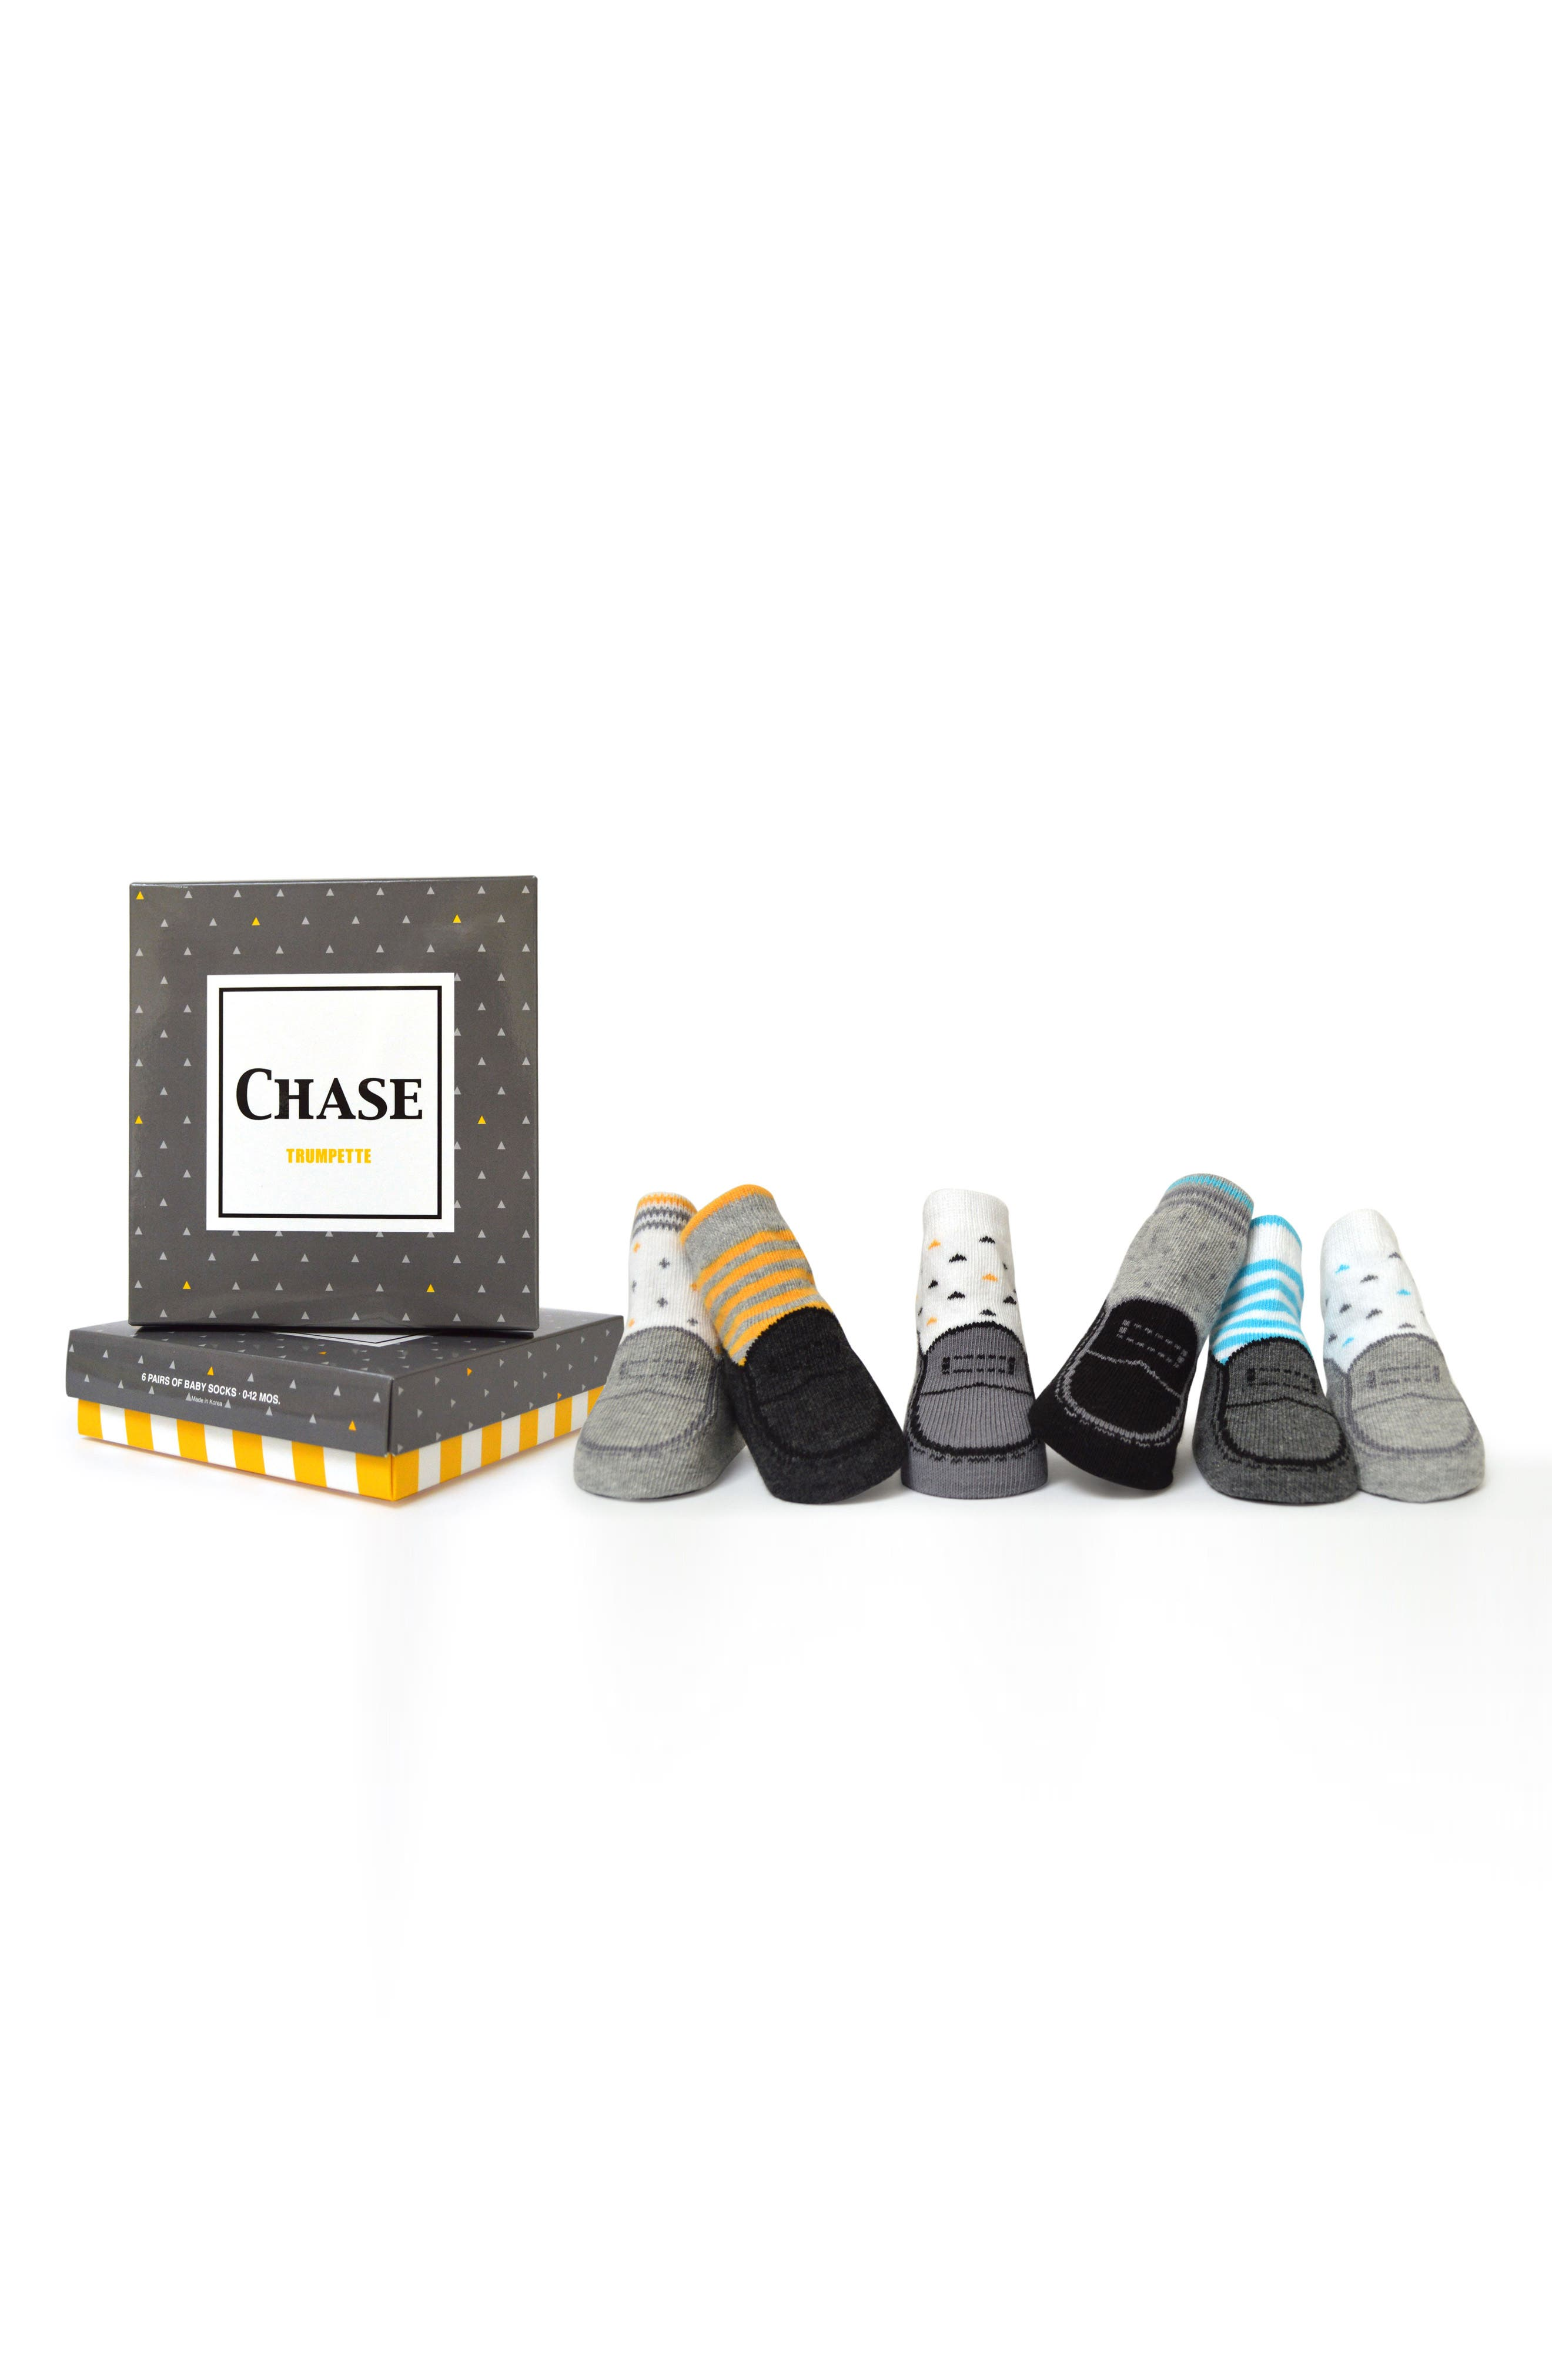 Chase 6-Pack Socks,                         Main,                         color, 100